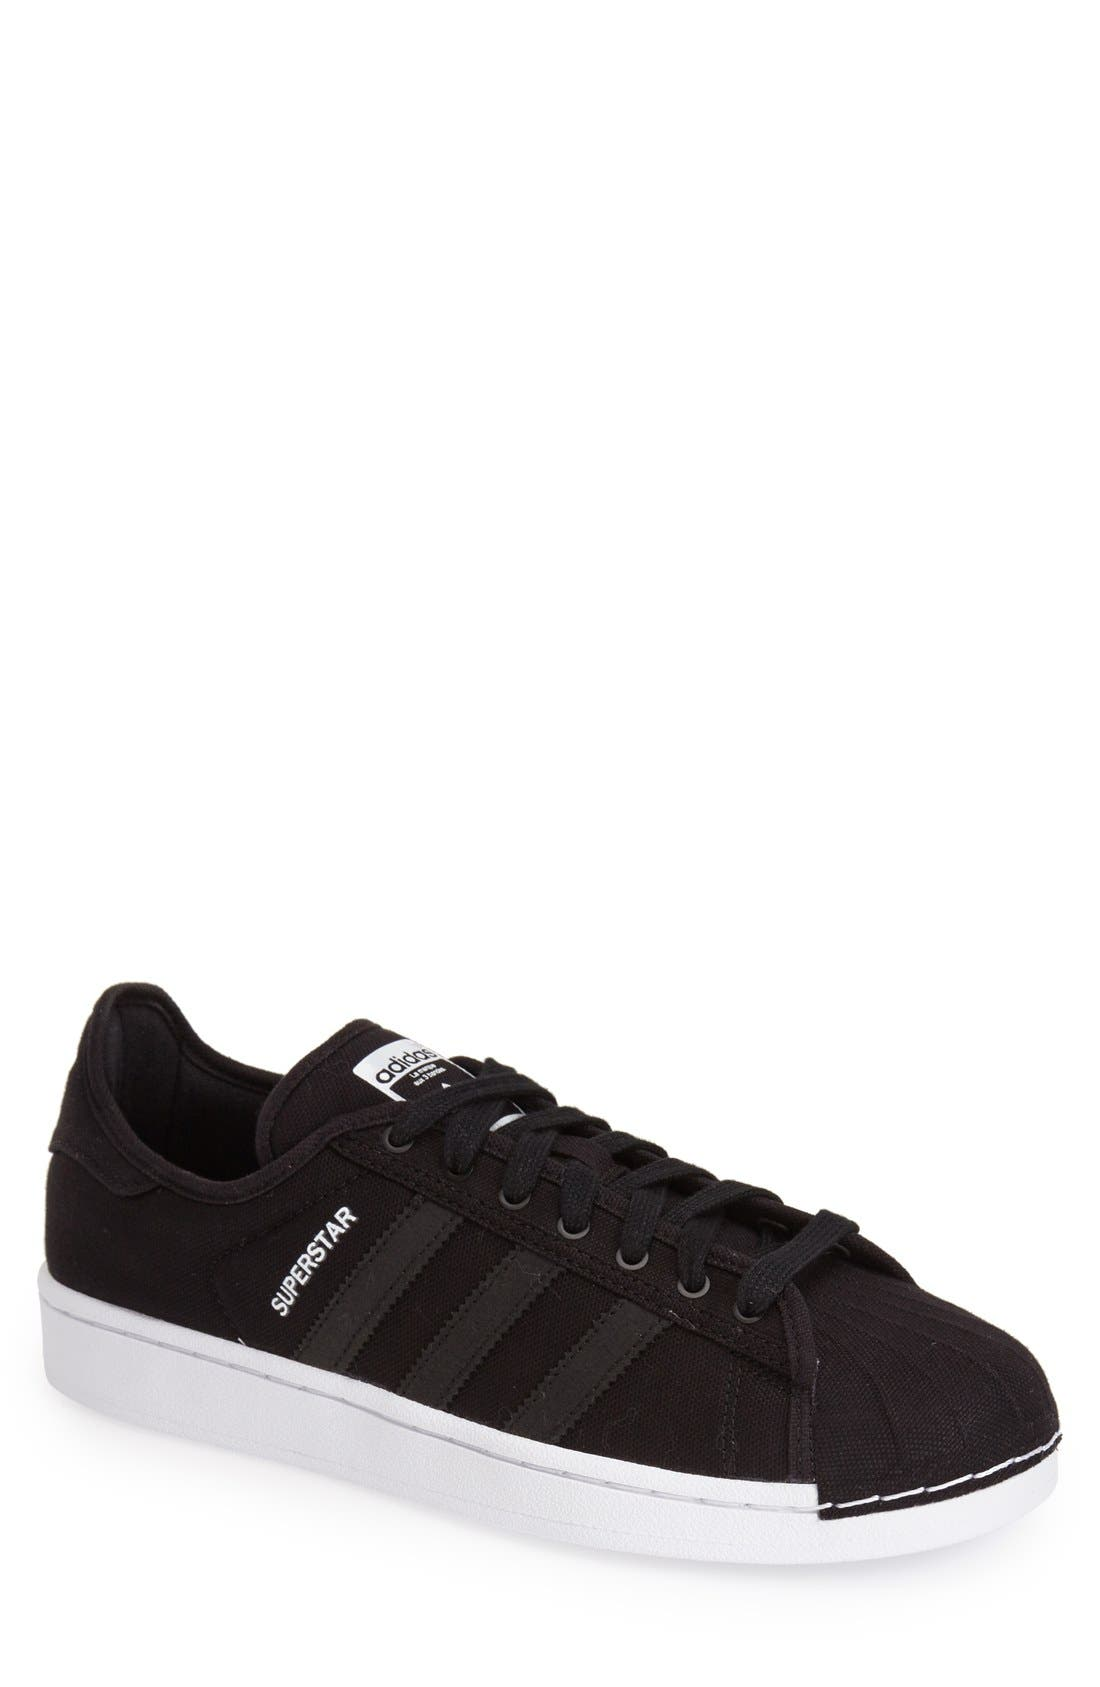 Superstar Sneaker,                         Main,                         color, 001